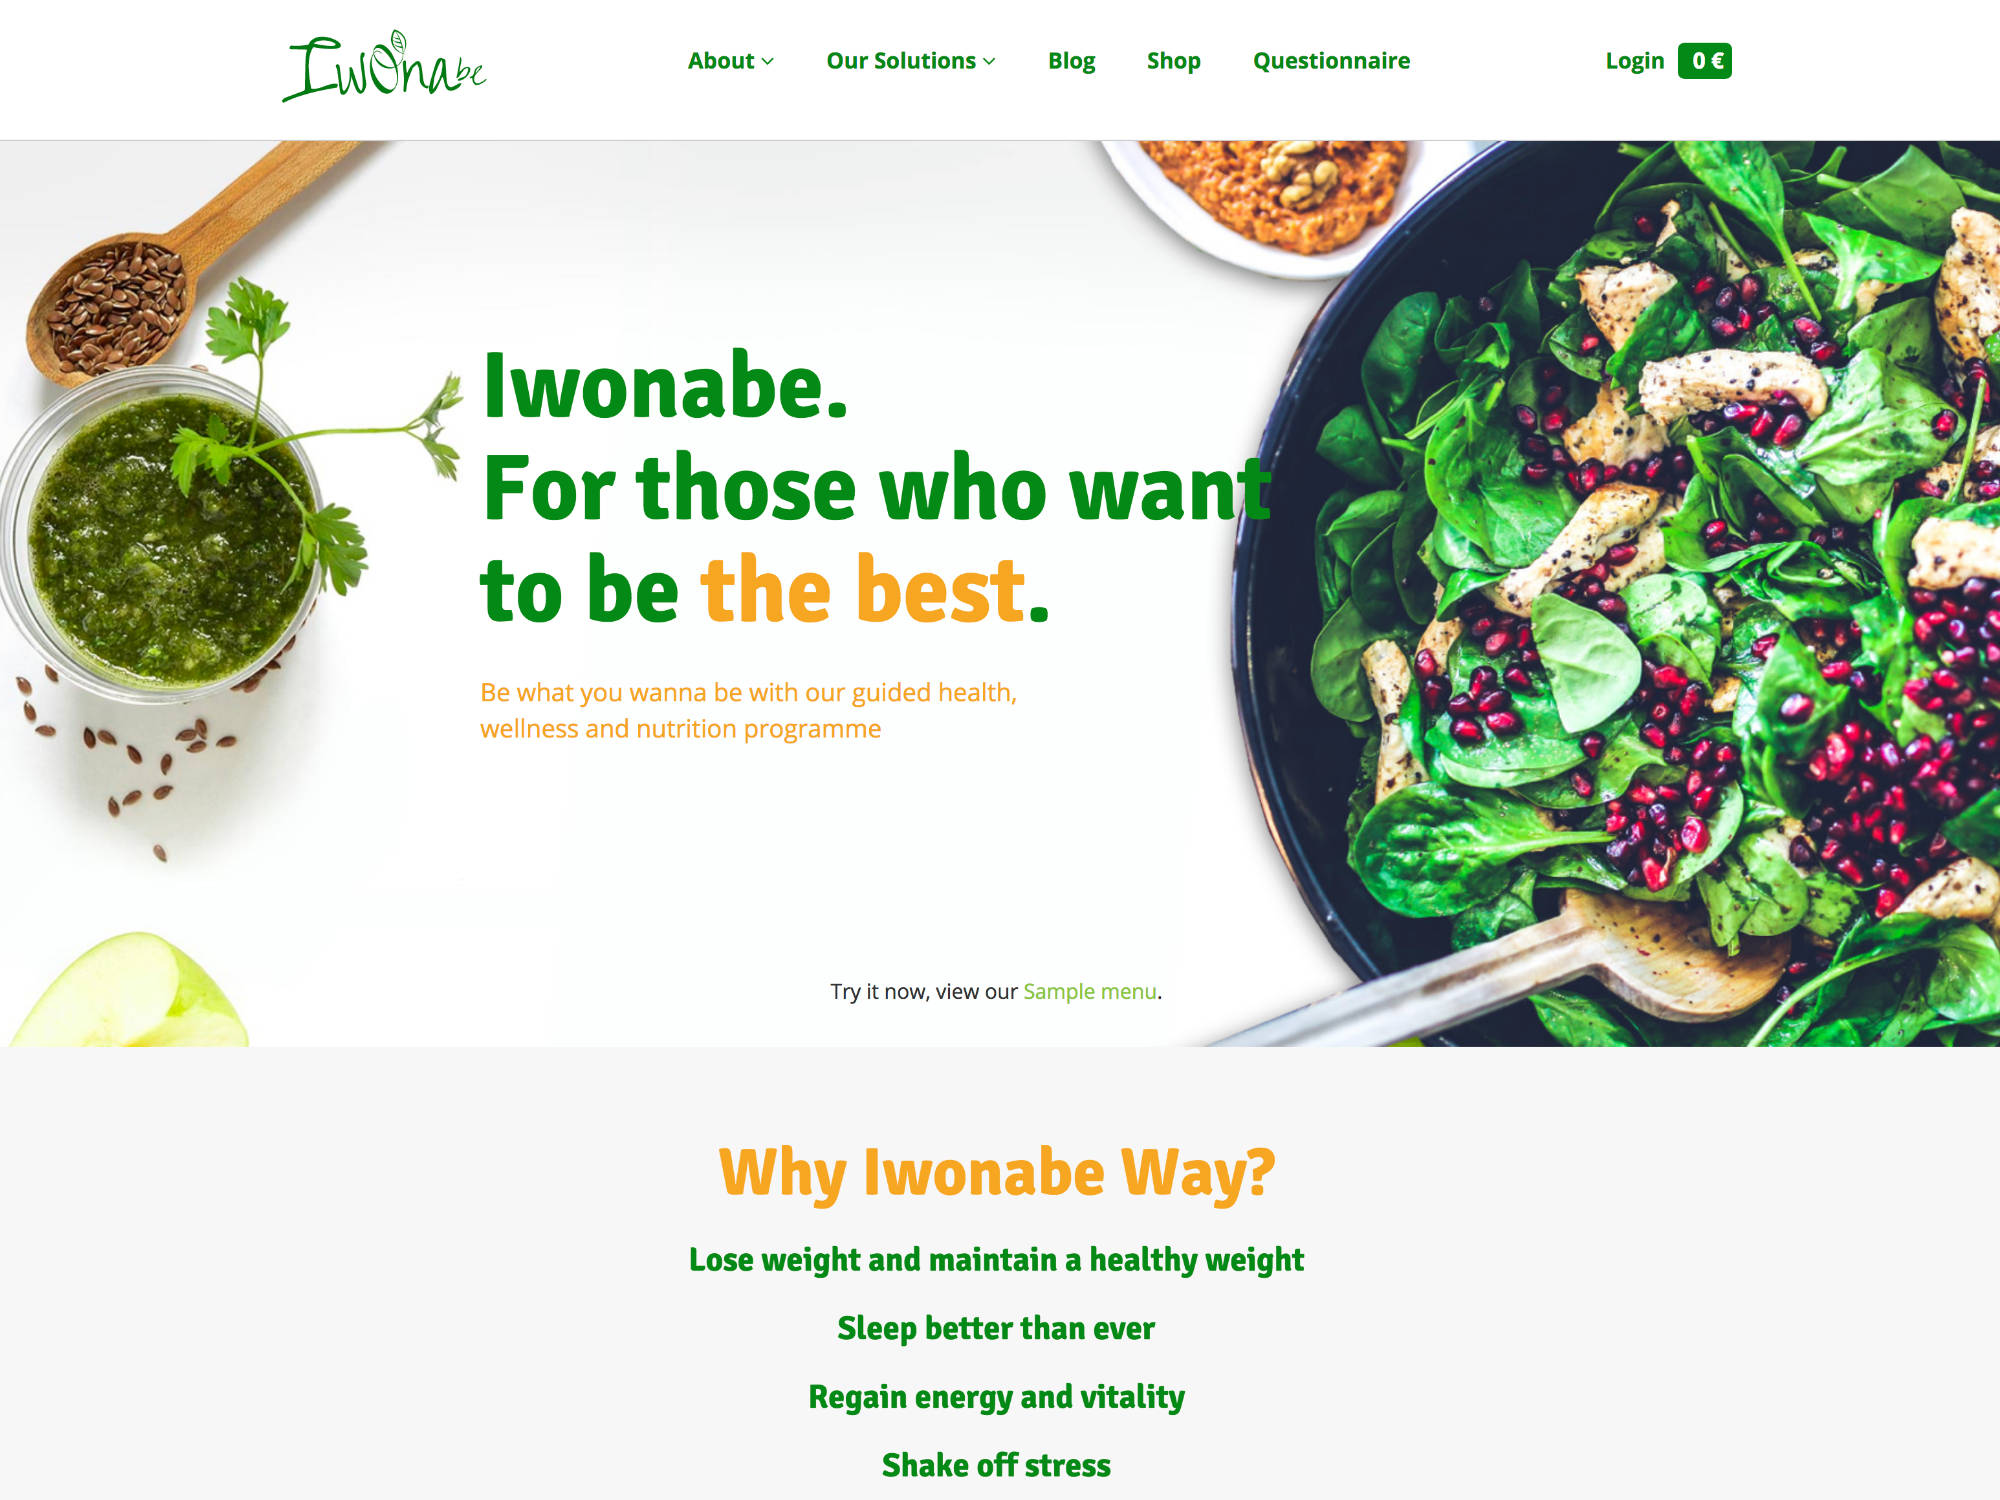 Iwonabe.com Website